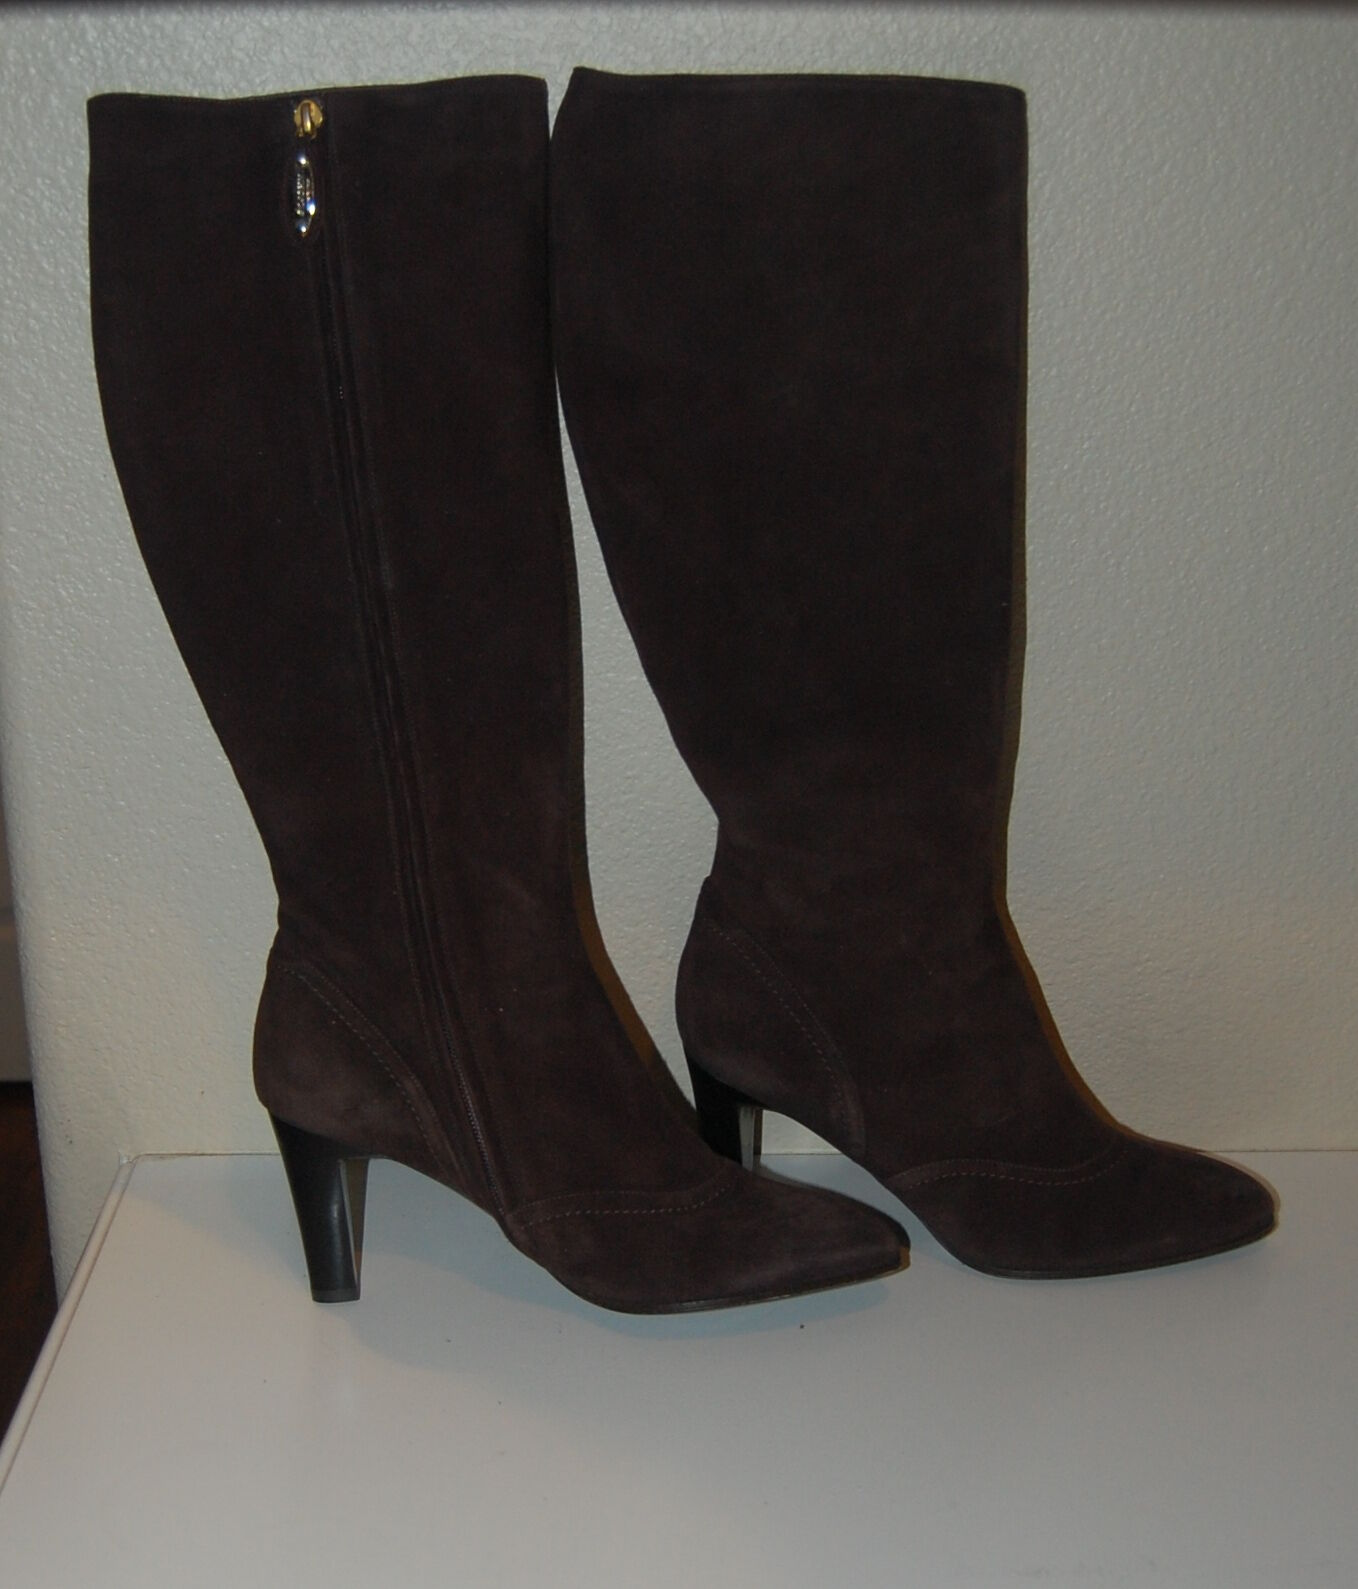 NEW DESIGNER ST. JOHN KNIT - BROWN SUEDE TALL KNEE HIGH BOOTS SIZE 8B